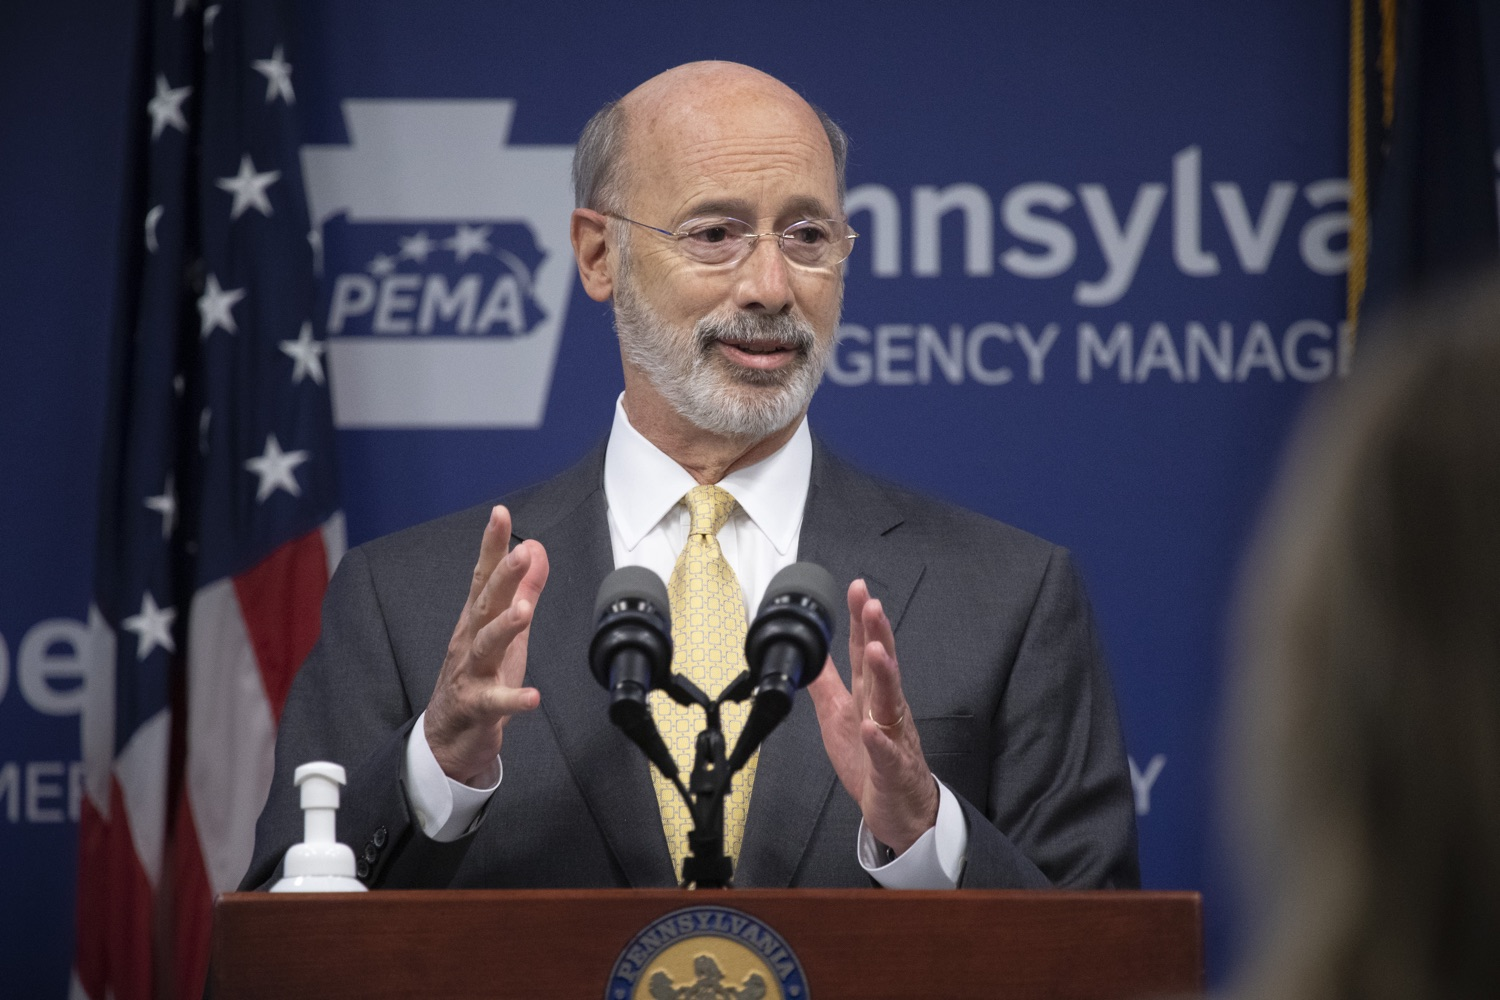 """<a href=""""https://filesource.wostreaming.net/commonwealthofpa/photo/18201_gov_orasure_dz_004.jpg"""" target=""""_blank"""">⇣Download Photo<br></a>Pennsylvania Governor Tom Wolf speaking to the press.  Today, Governor Tom Wolf announced that OraSure Technologies Inc., a developer and manufacturer of rapid diagnostic tests, collection and stabilization devices headquartered in Northampton County, will expand its manufacturing operations in the Lehigh Valley, creating 177 new, full-time jobs and retaining 233 jobs.  Harrisburg, PA  August 11, 2020"""